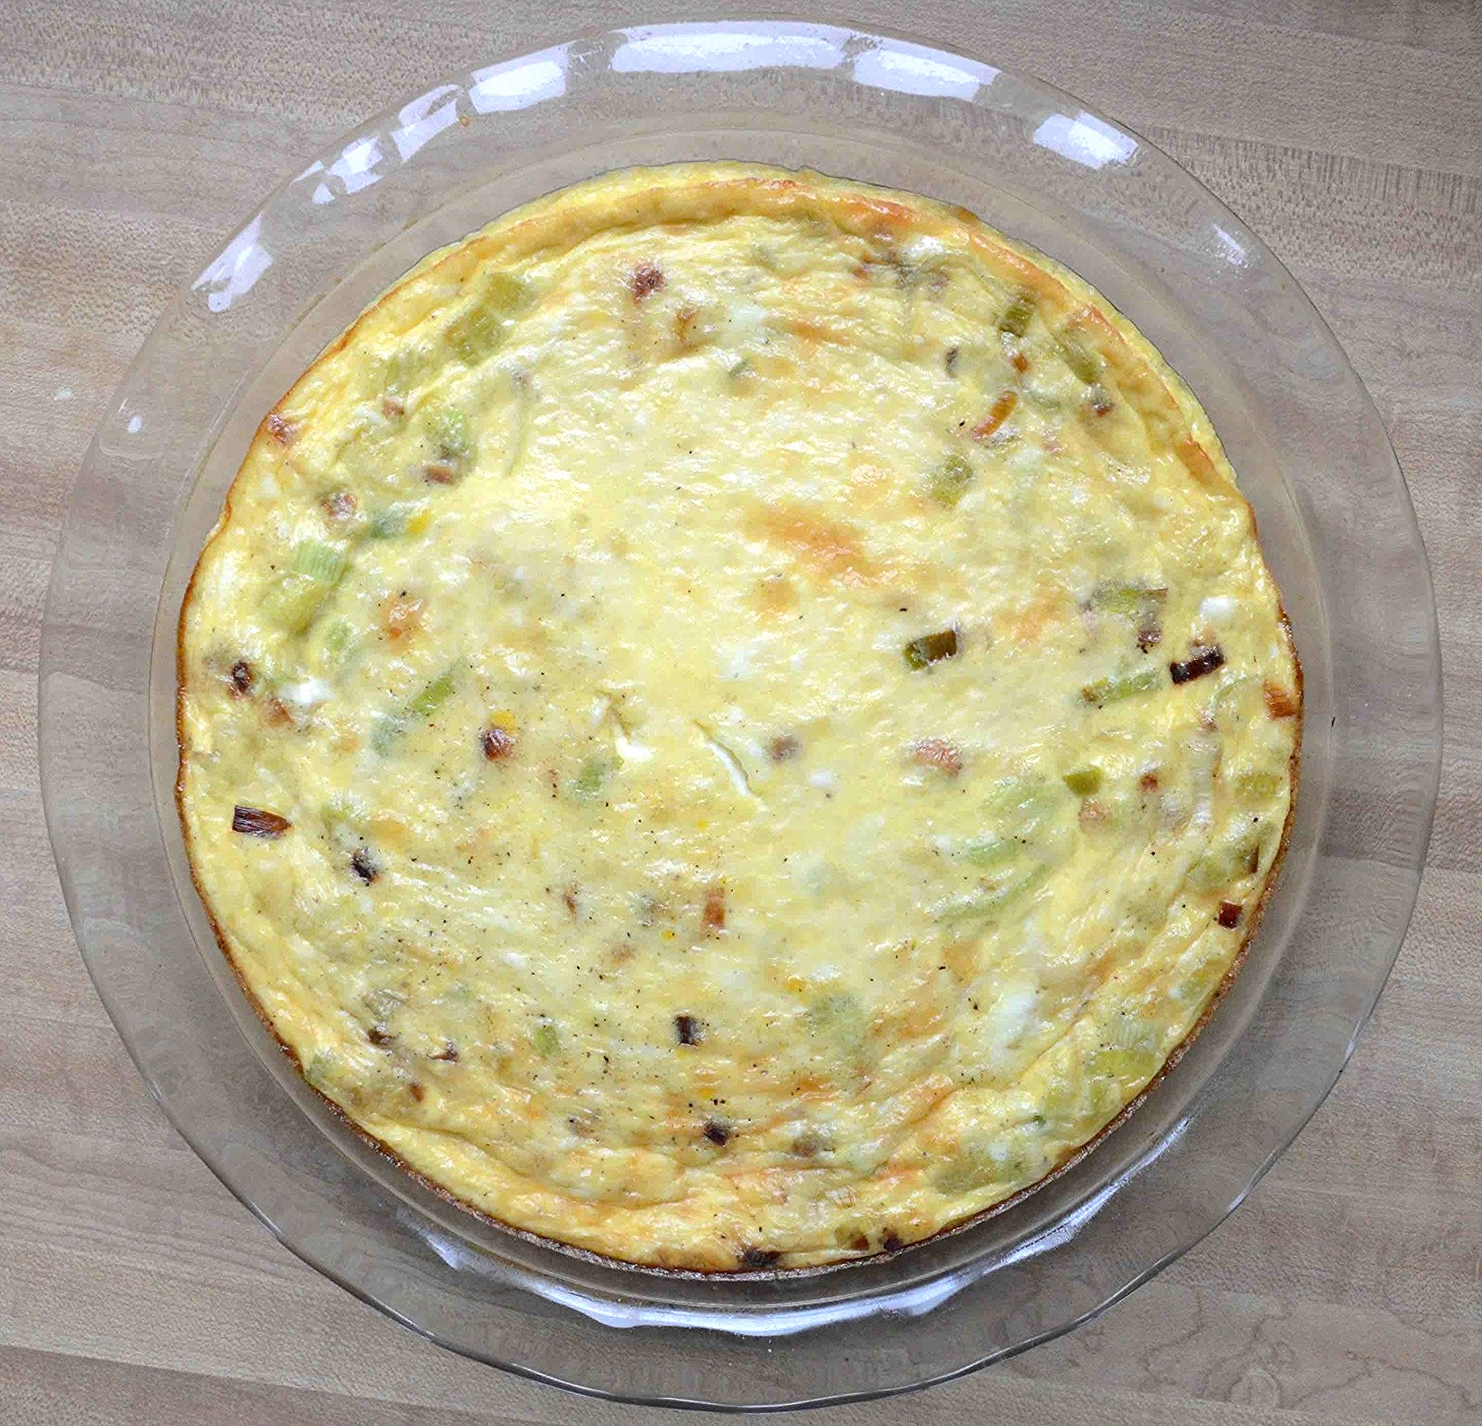 Crustless Leek and Swiss/Gruyere Quiche